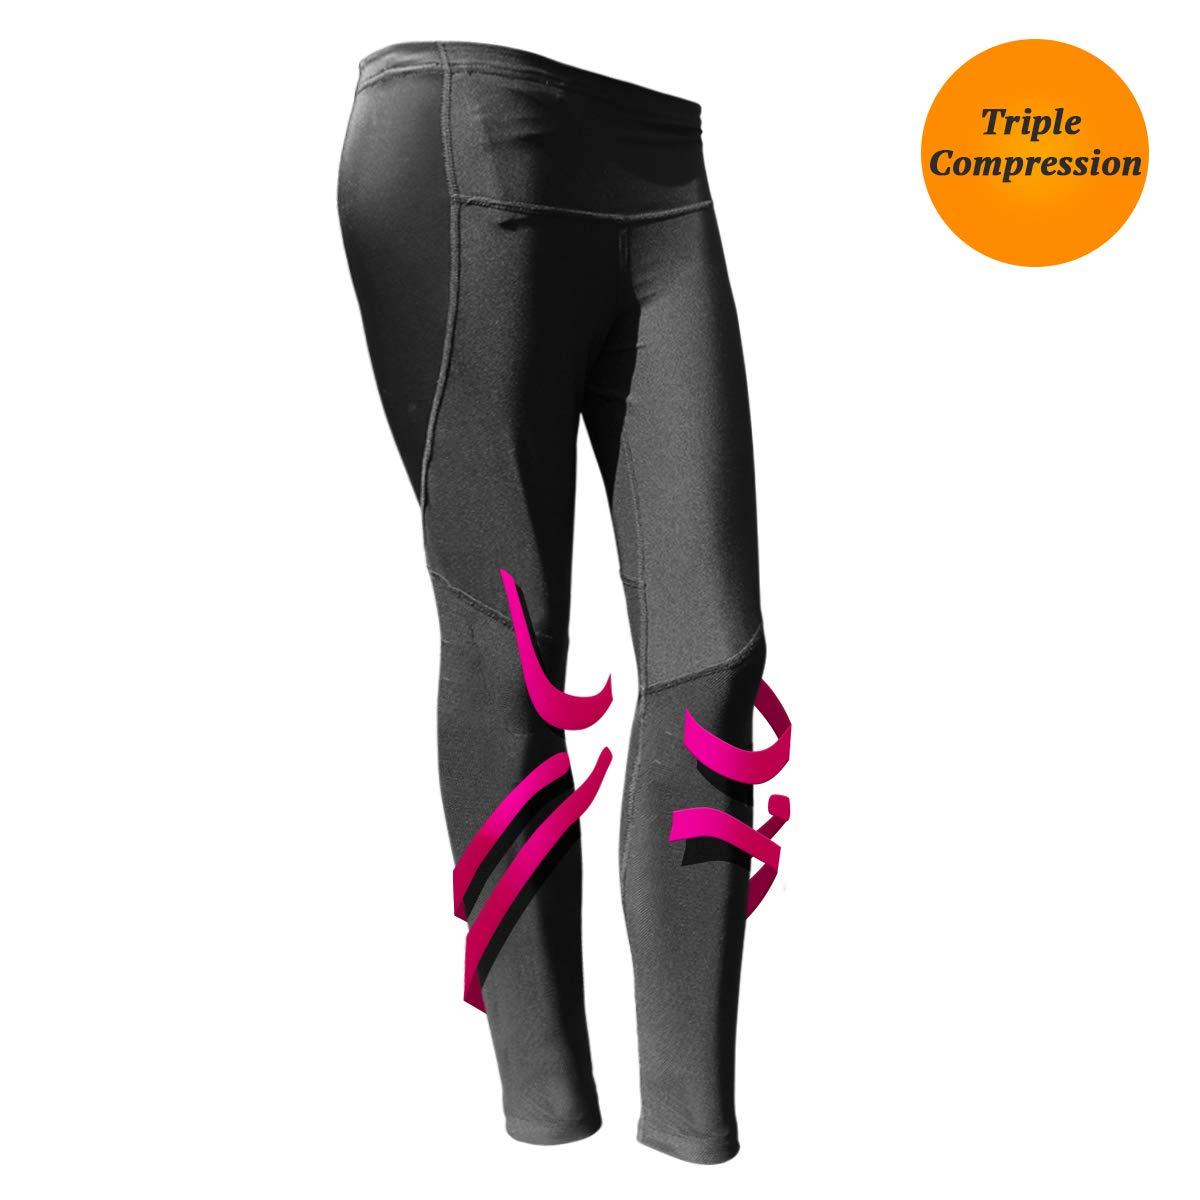 BODYVINES Women's Compression Long Tights Athletic Leggings for Workout Training